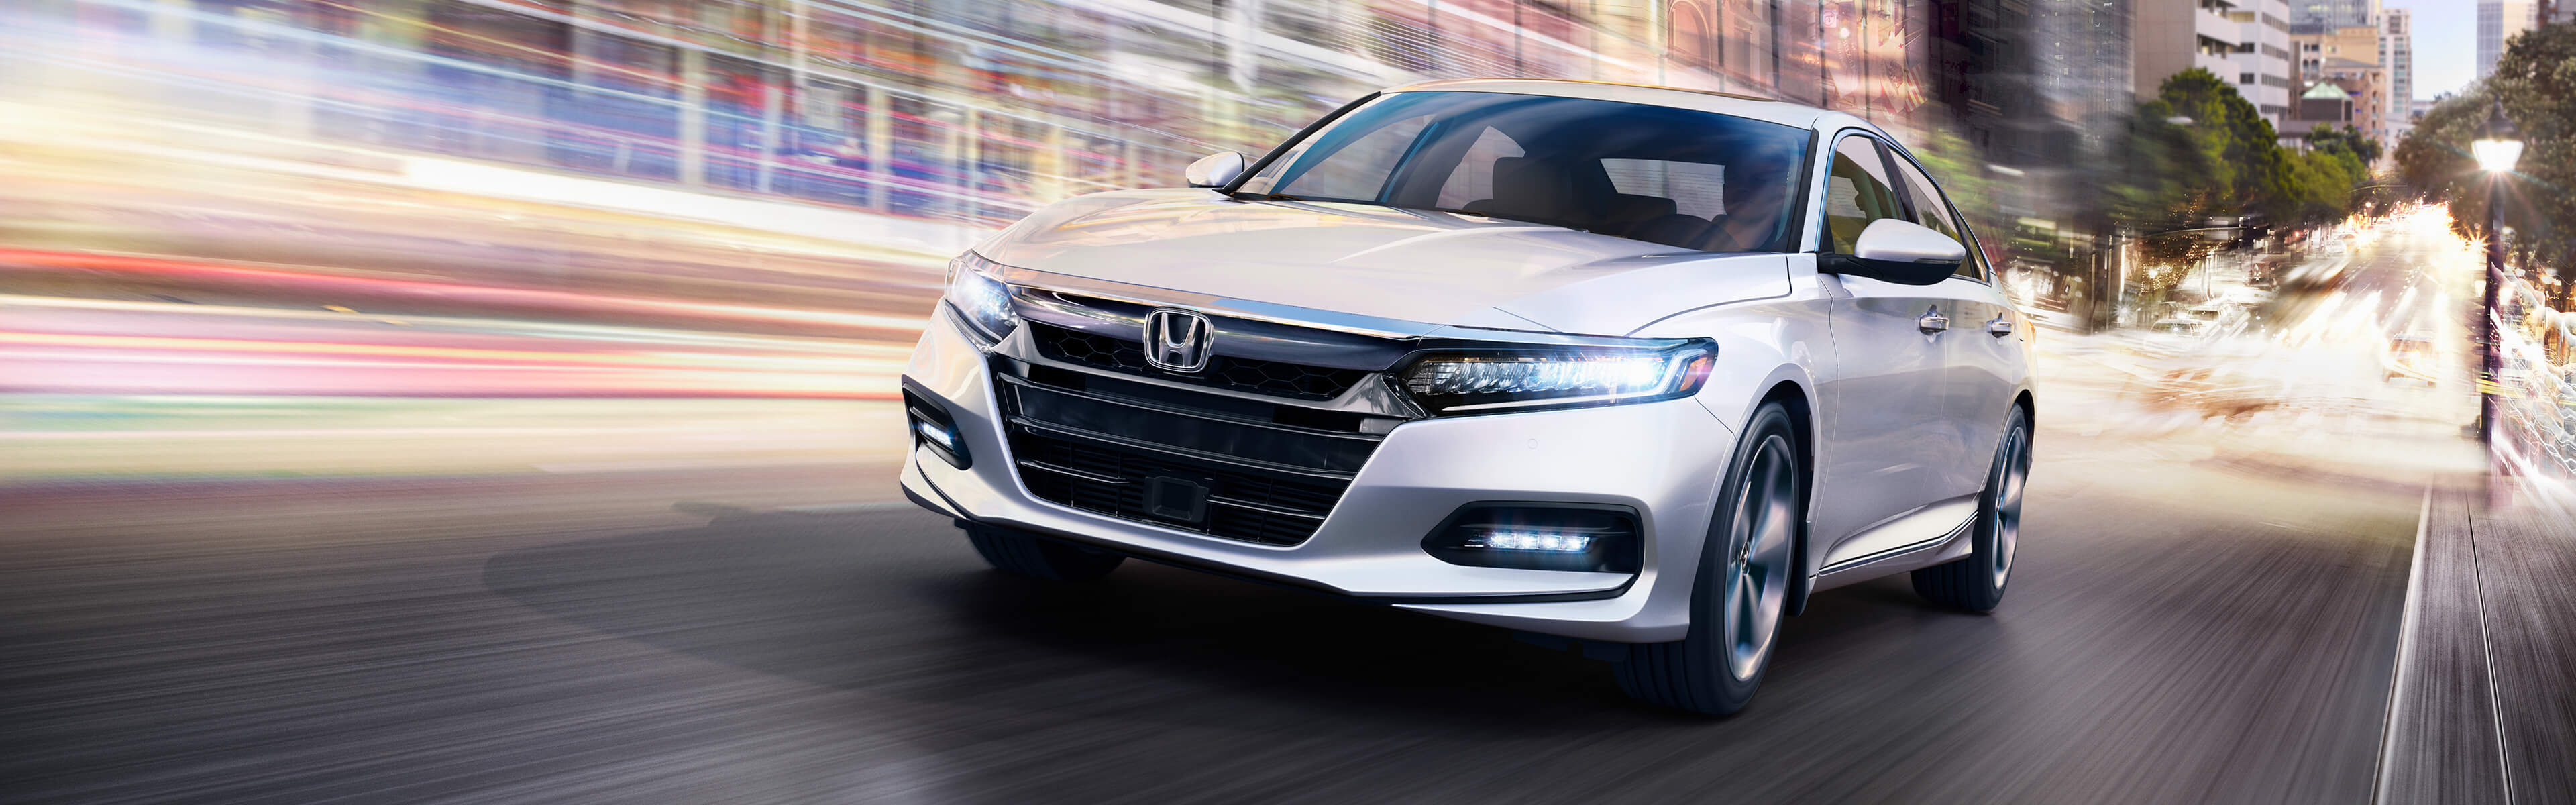 2018 Honda Accord at Richmond Hill Honda in Toronto and the GTA